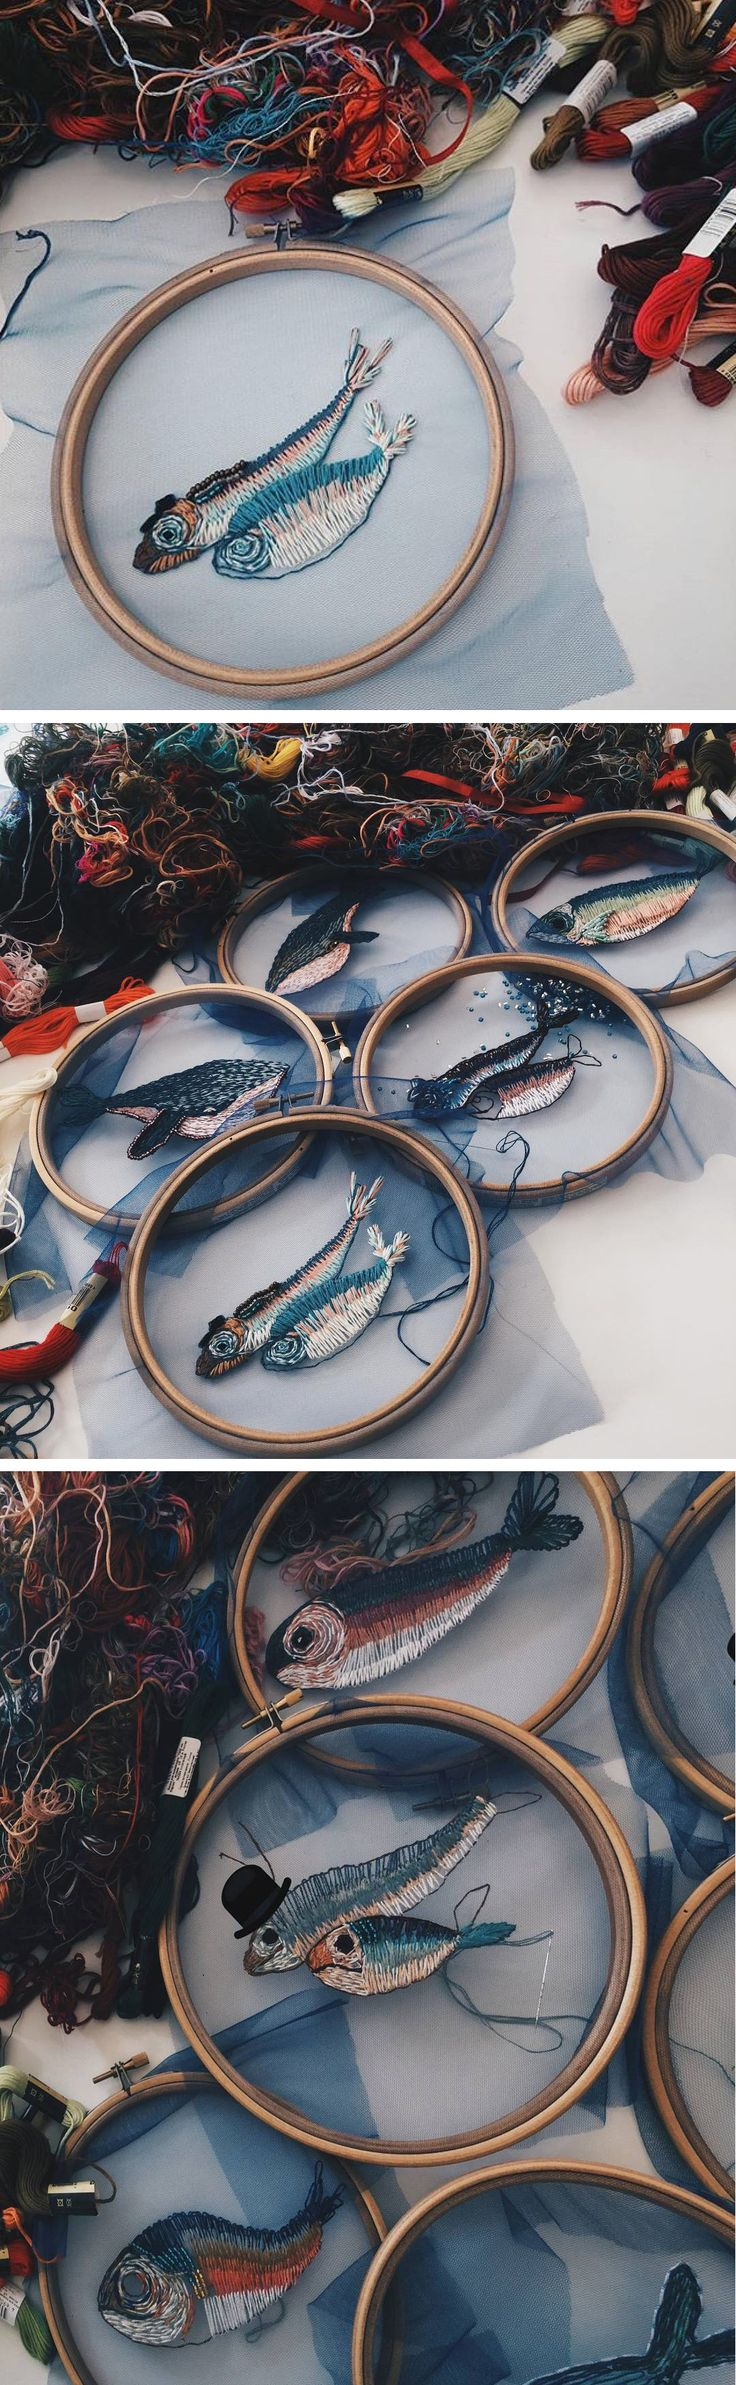 Fish embroidery on tulle // modern embroidery // hoop art